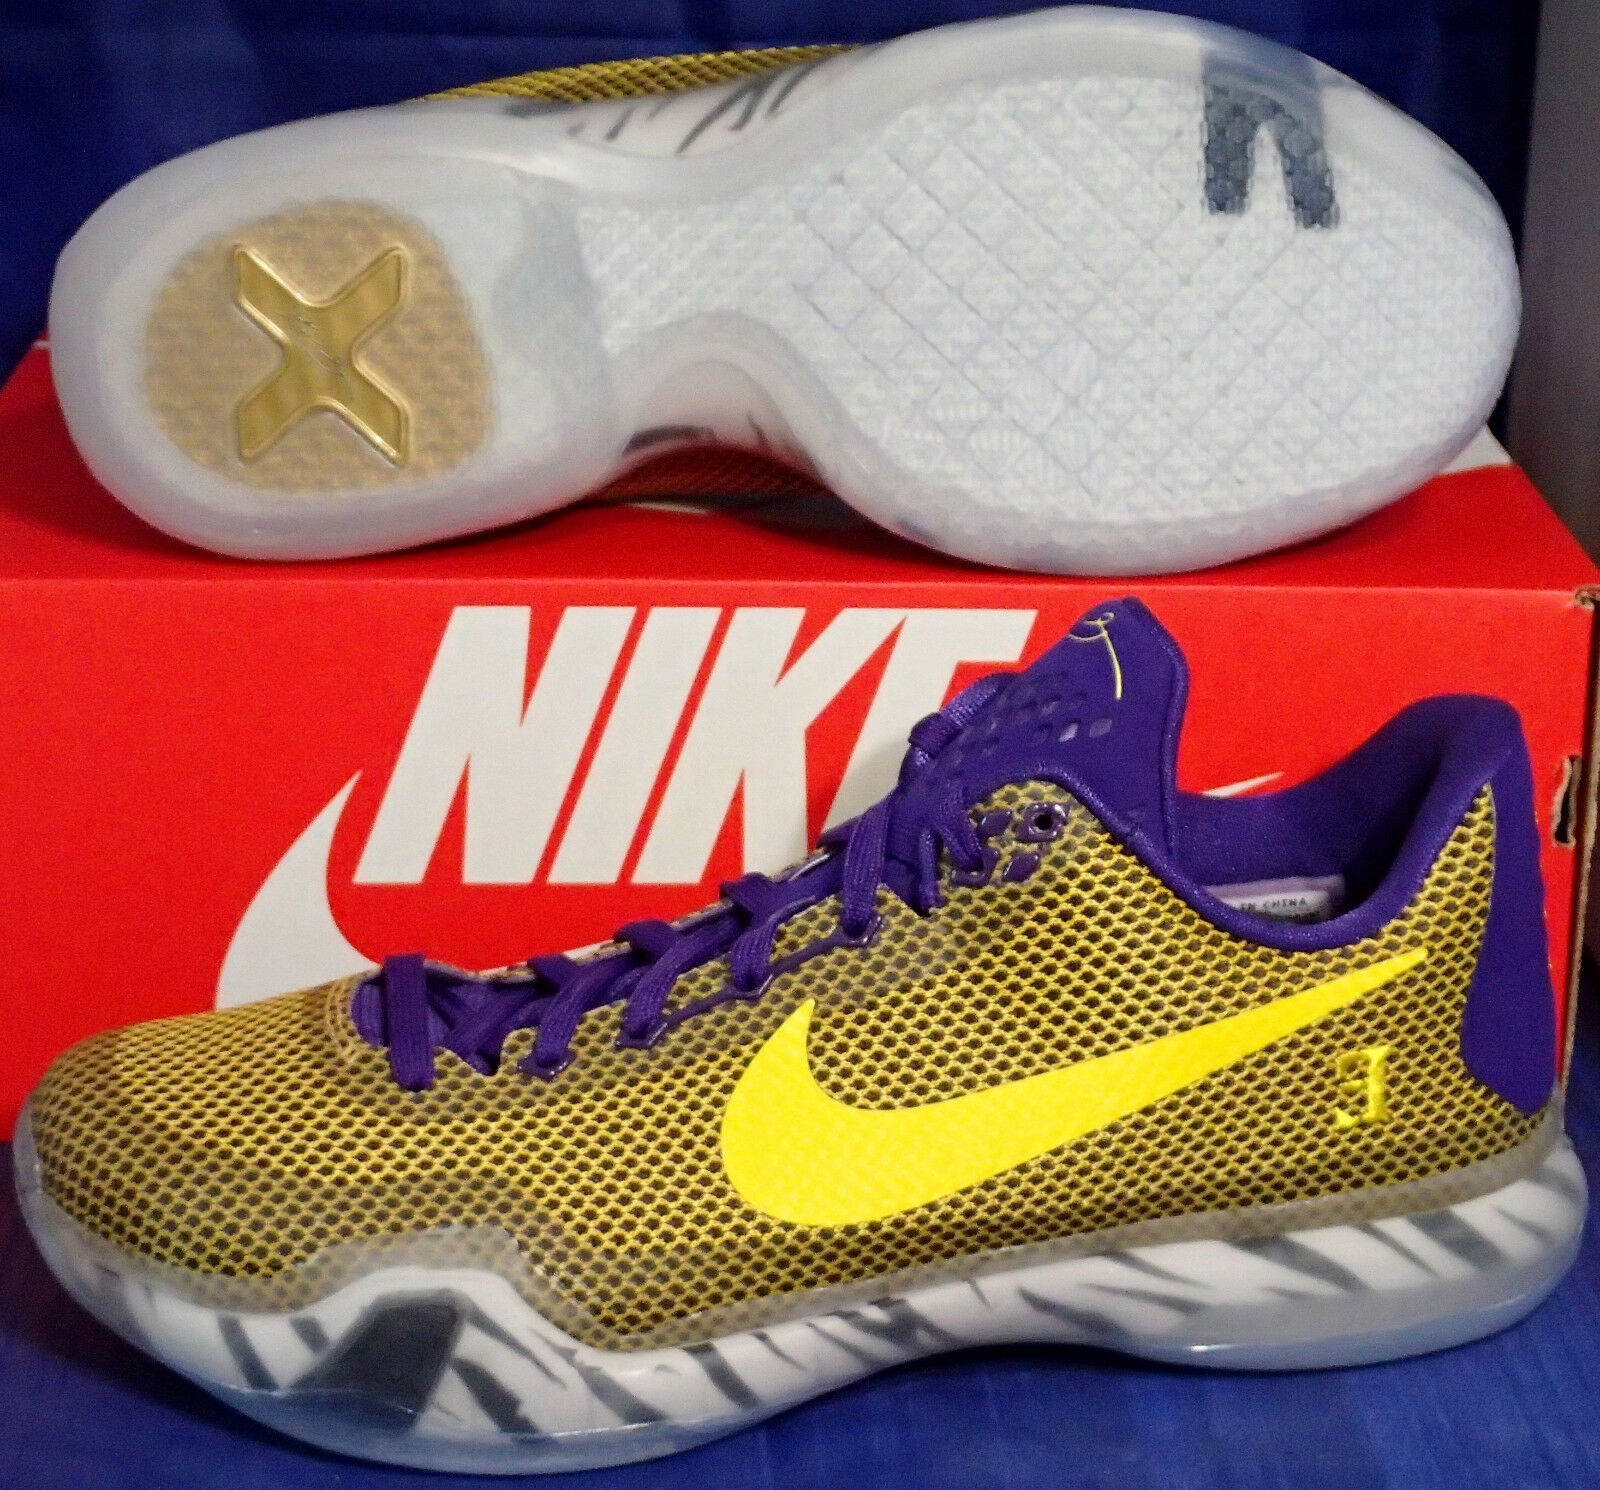 Nike Kobe X 10 Lakers Identificador De Los Angeles Lakers 10 (7774201881) 267fac